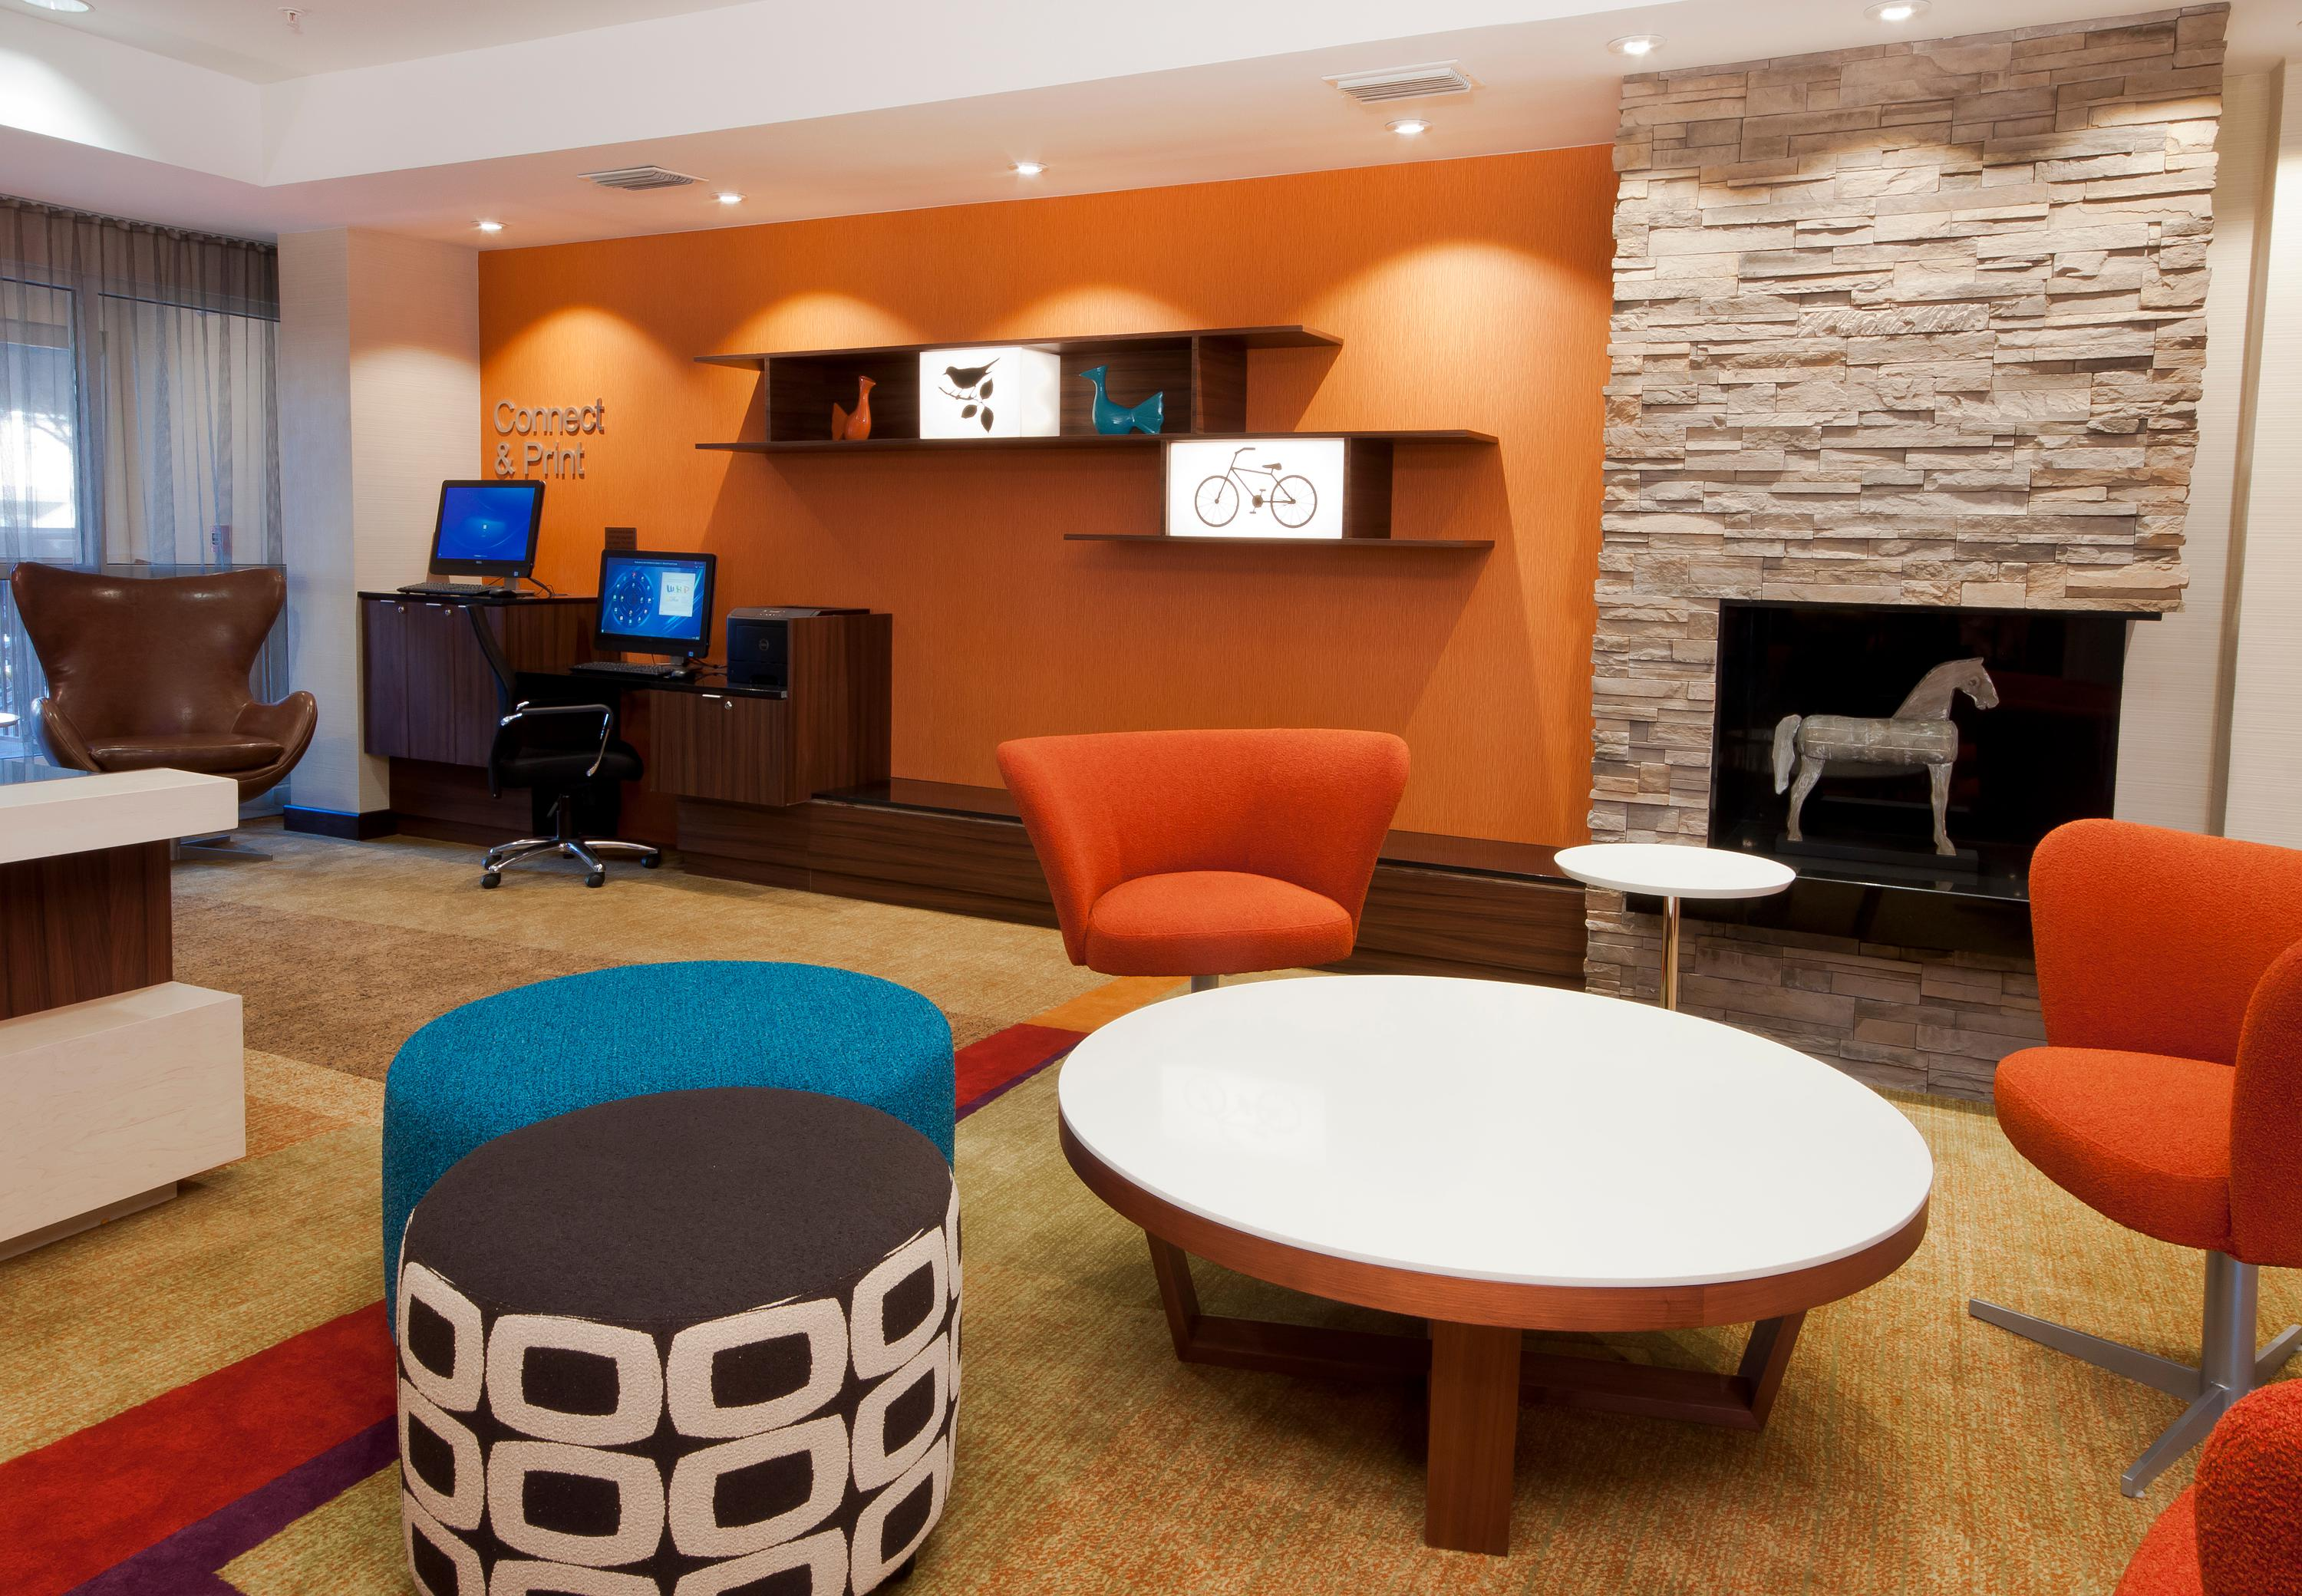 Fairfield Inn & Suites by Marriott Fort Worth/Fossil Creek image 1